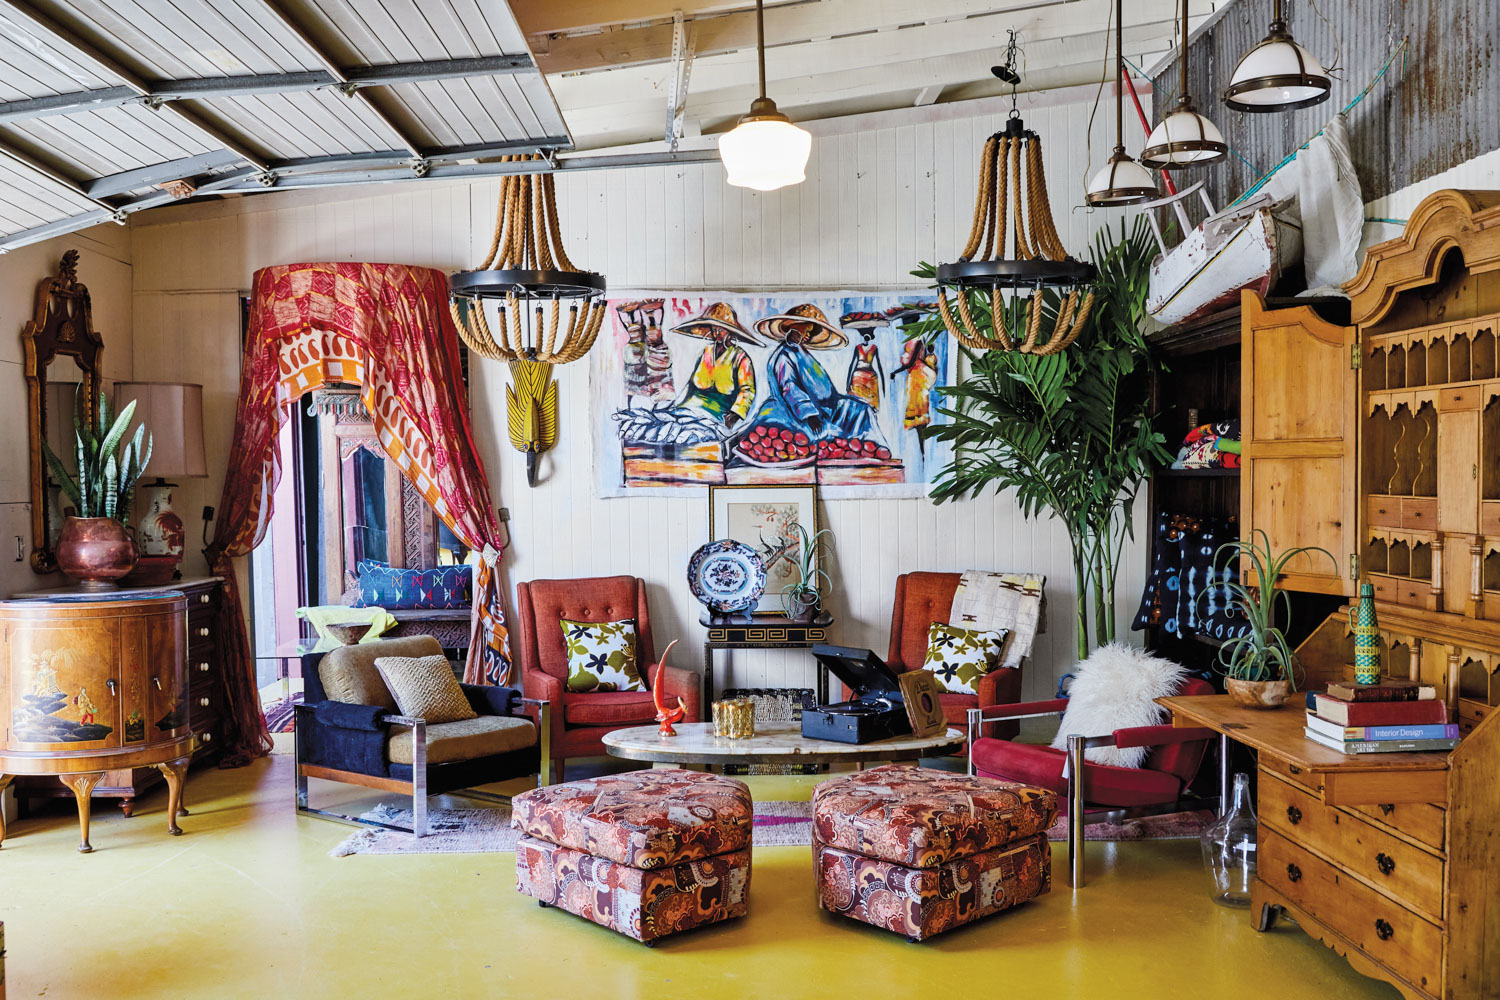 Room with bohemian red, magenta and blue accents